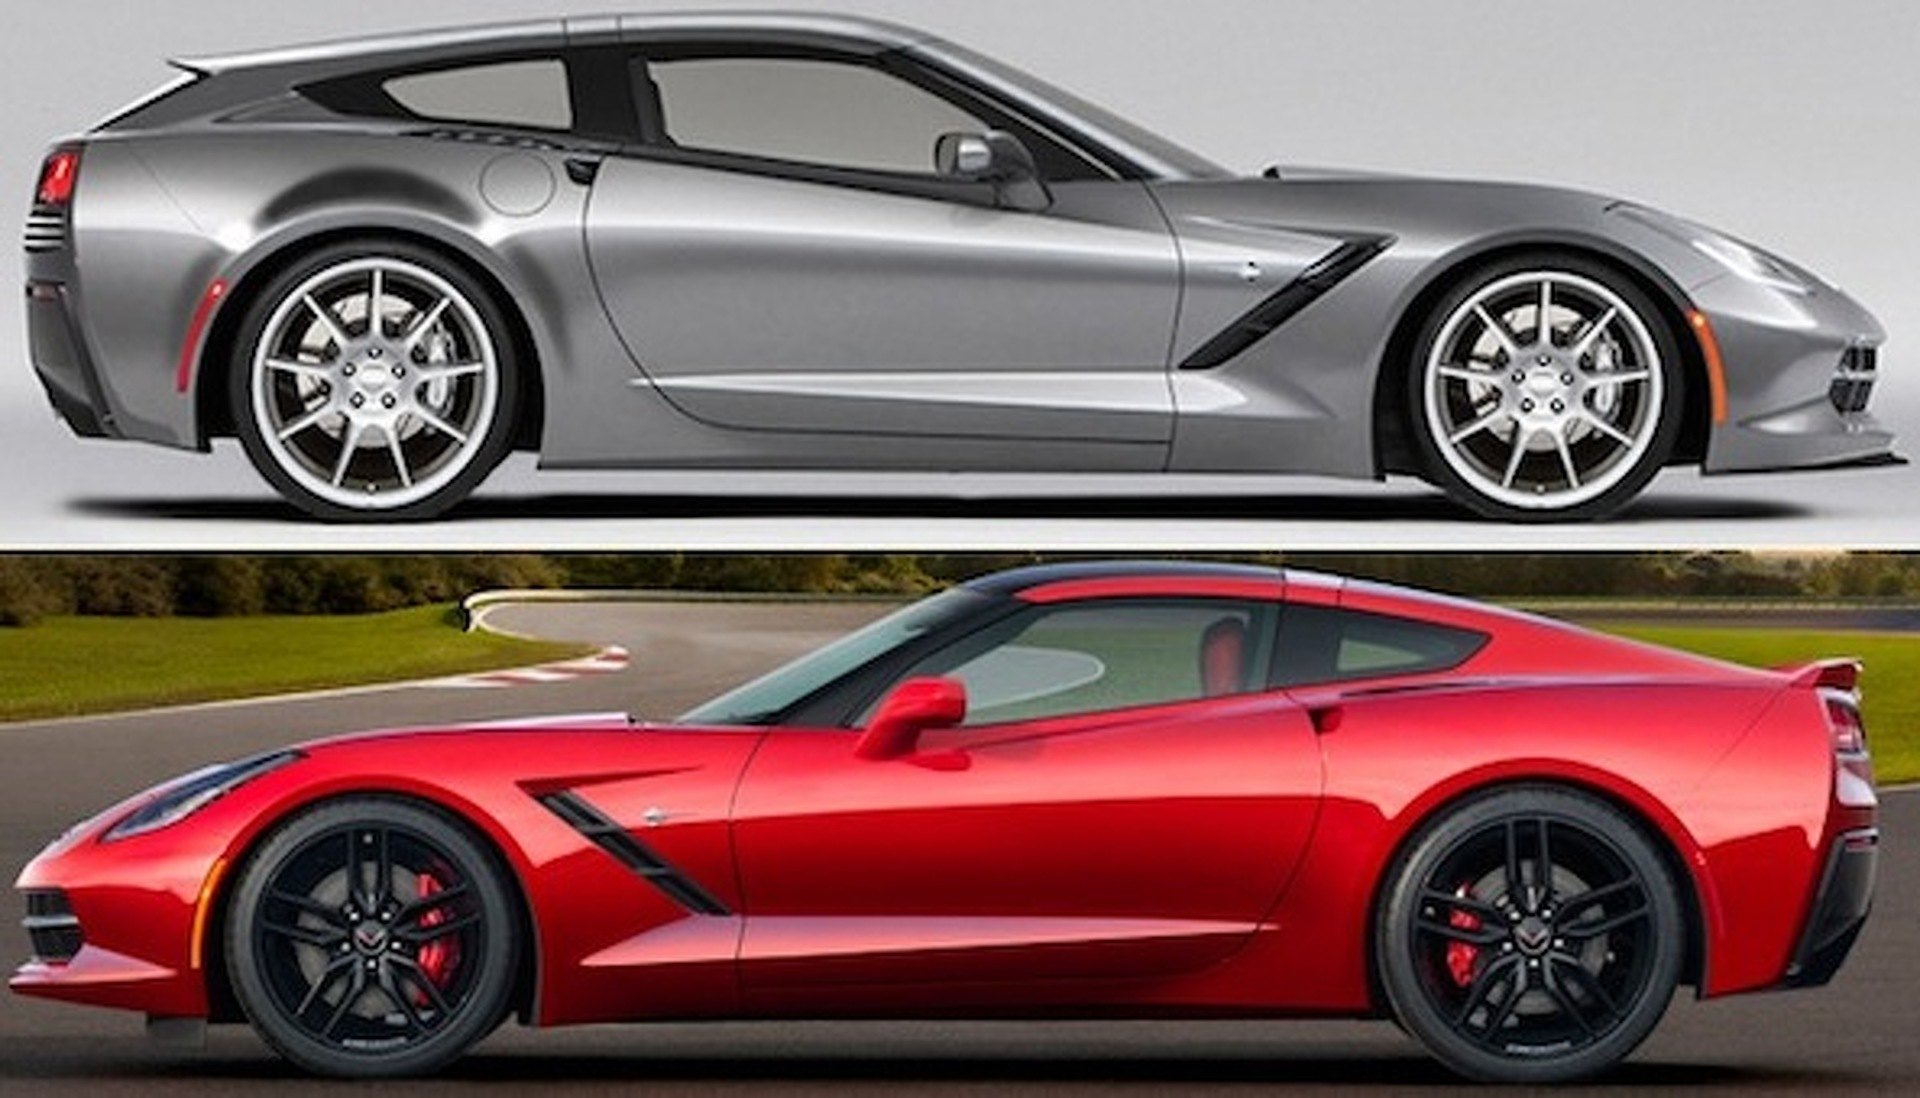 Callaway Corvette Stingray AeroWagon Might Actually Be Produced